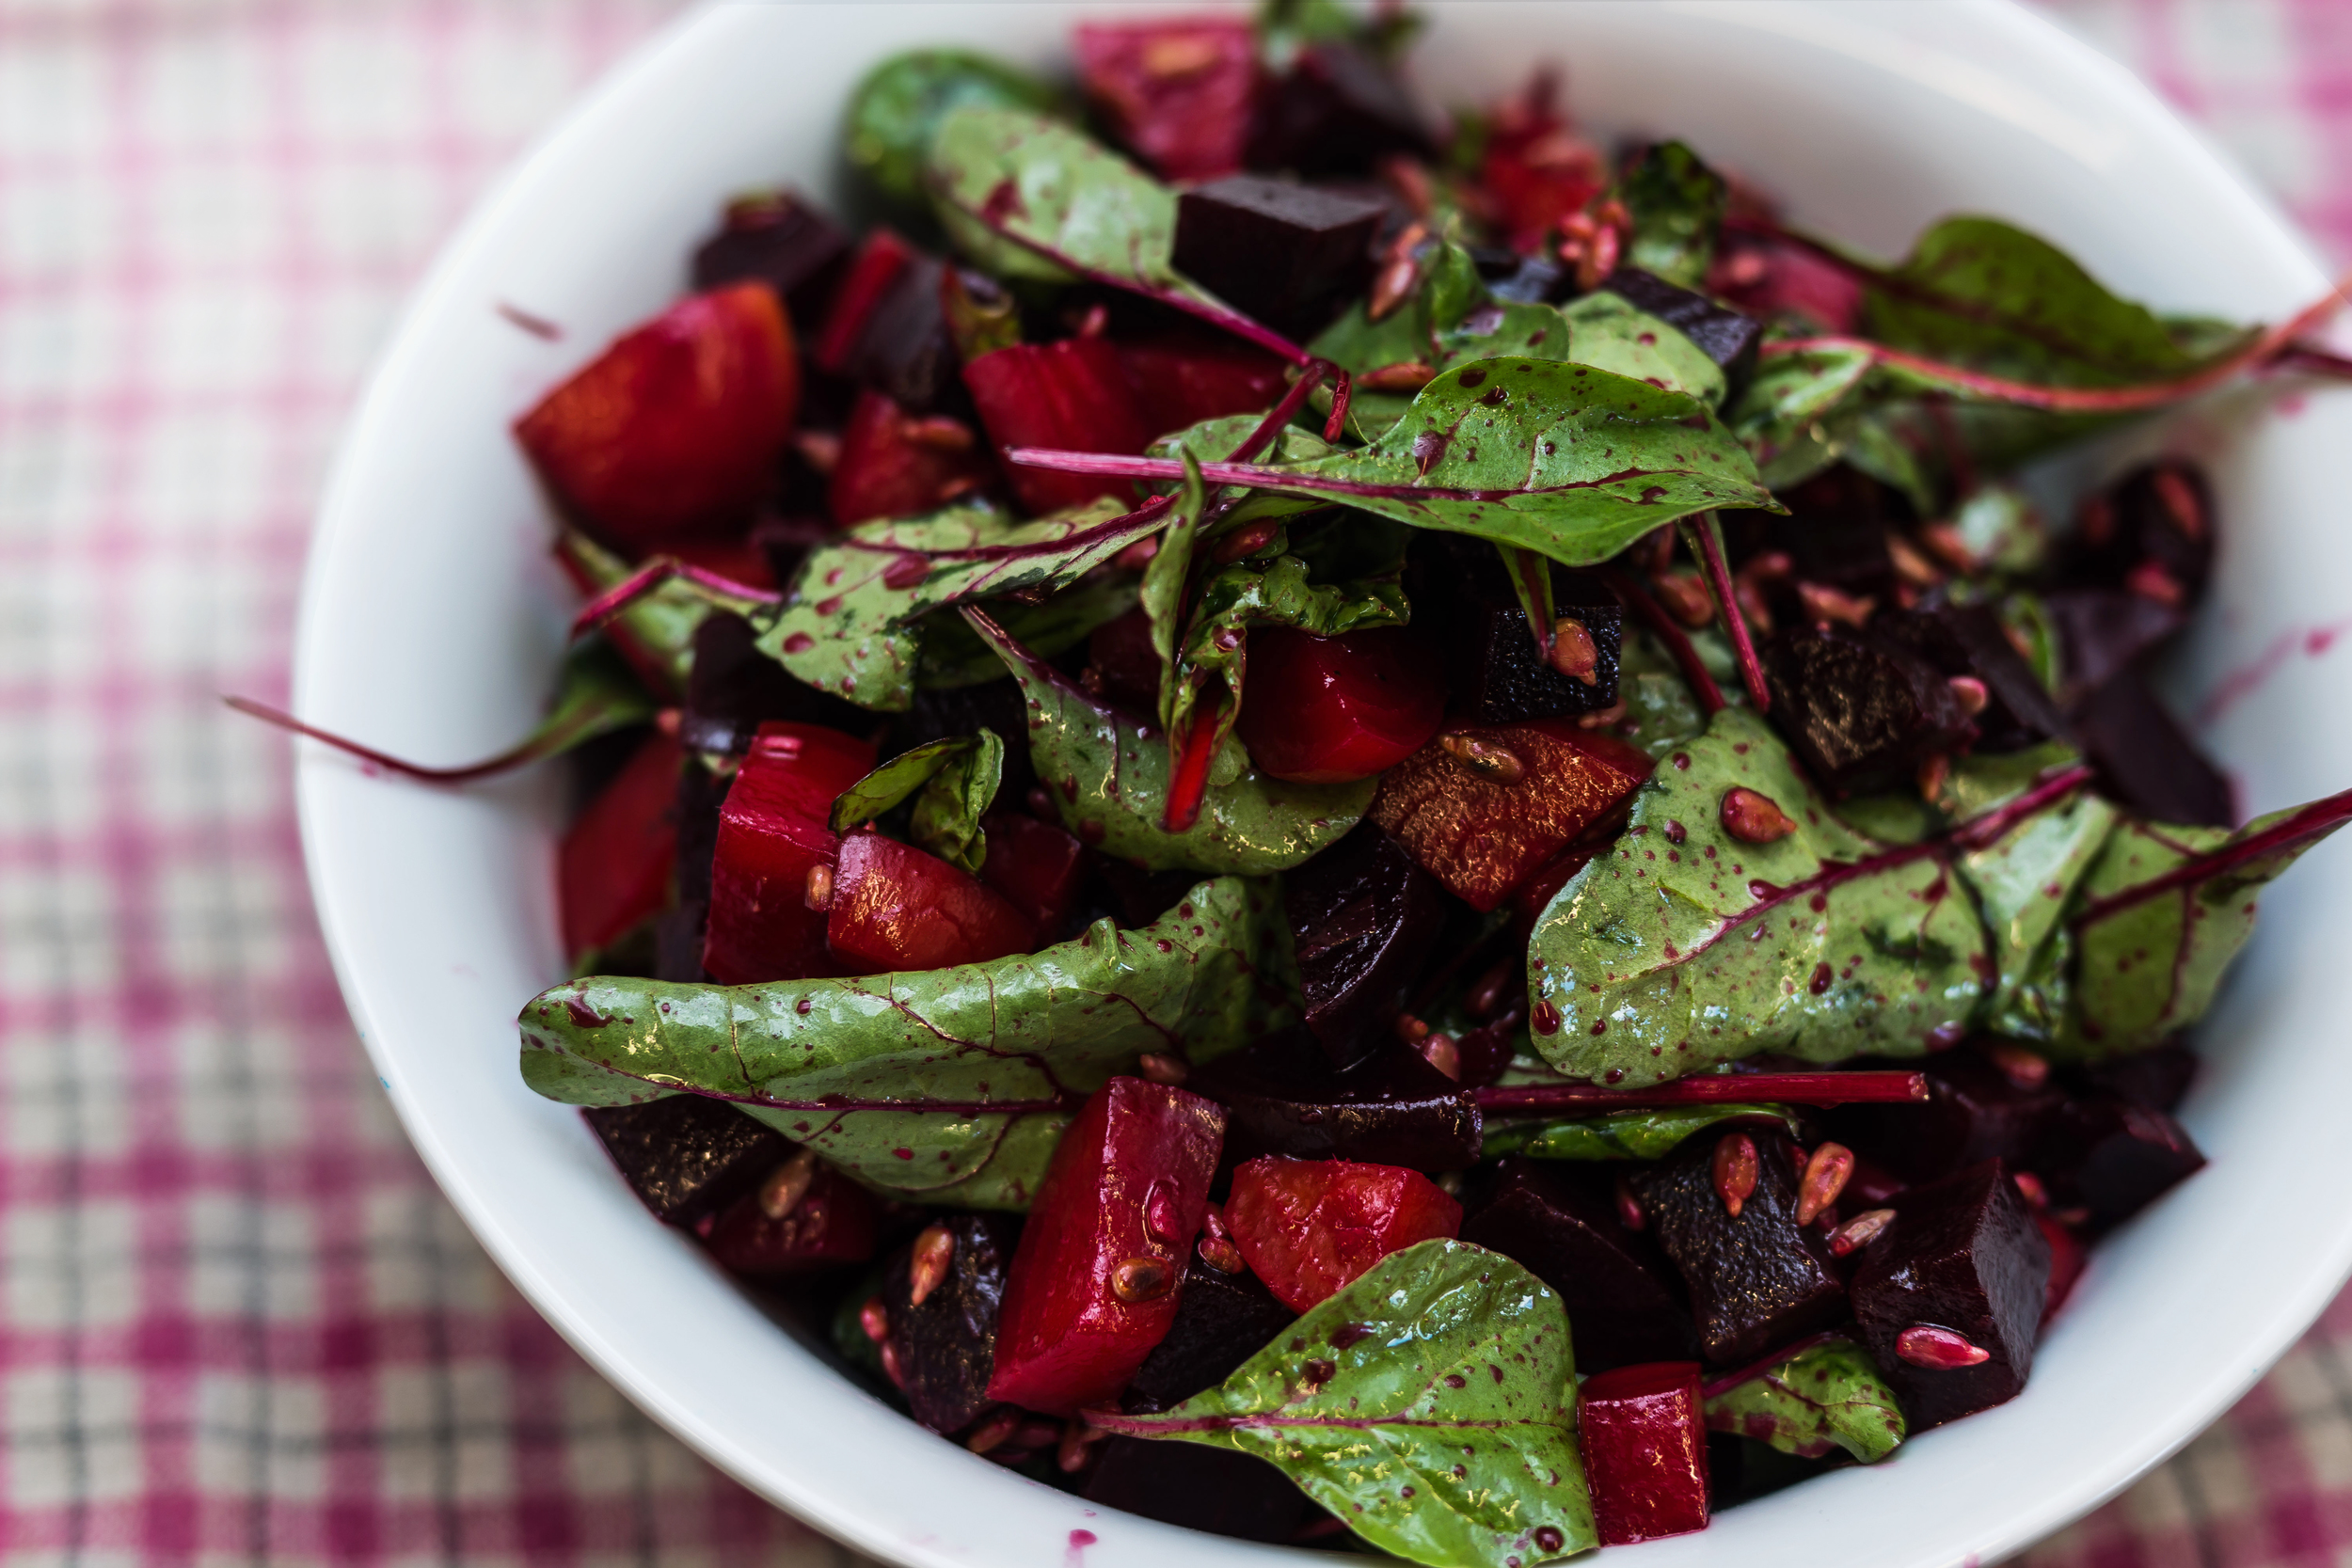 Red and gold beetroot salad with maple syrup & sherry vinegar dressing